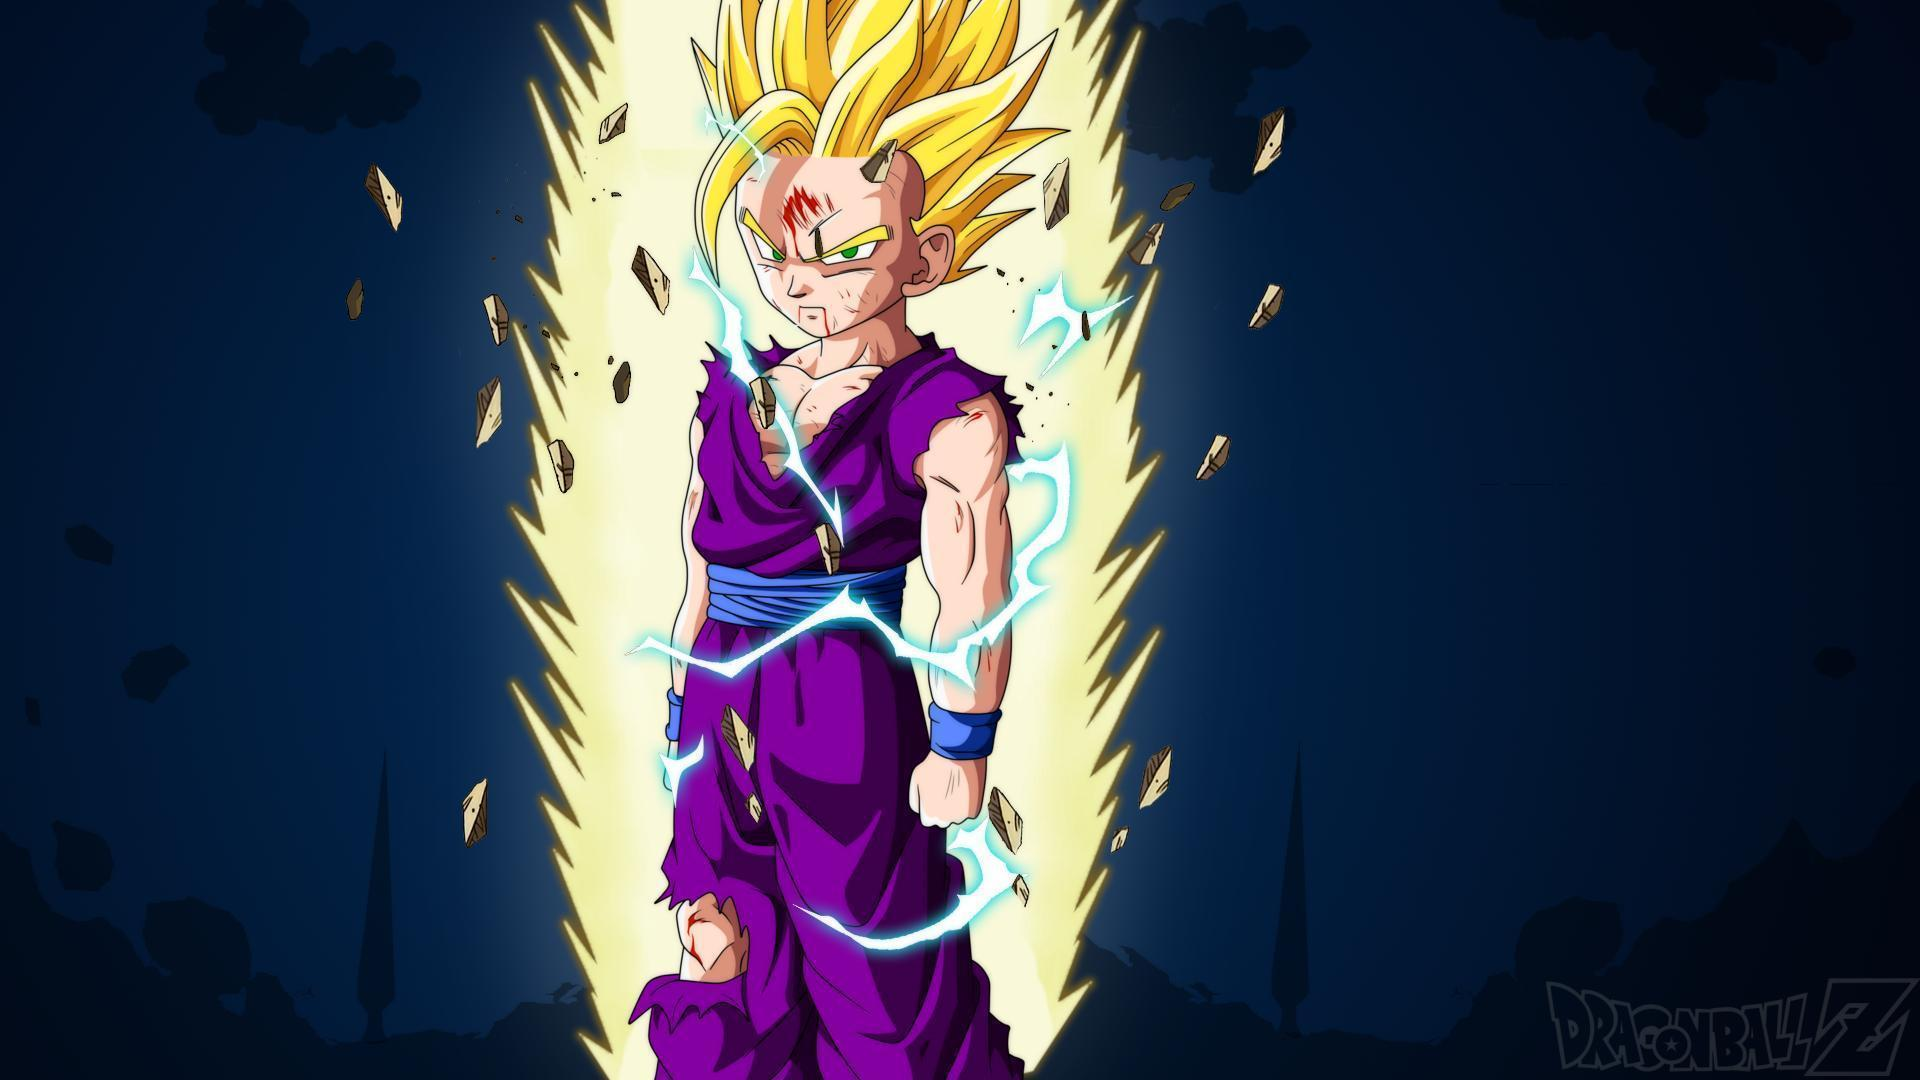 Ssj2 gohan wallpapers wallpaper cave - Dragon ball z gohan images ...